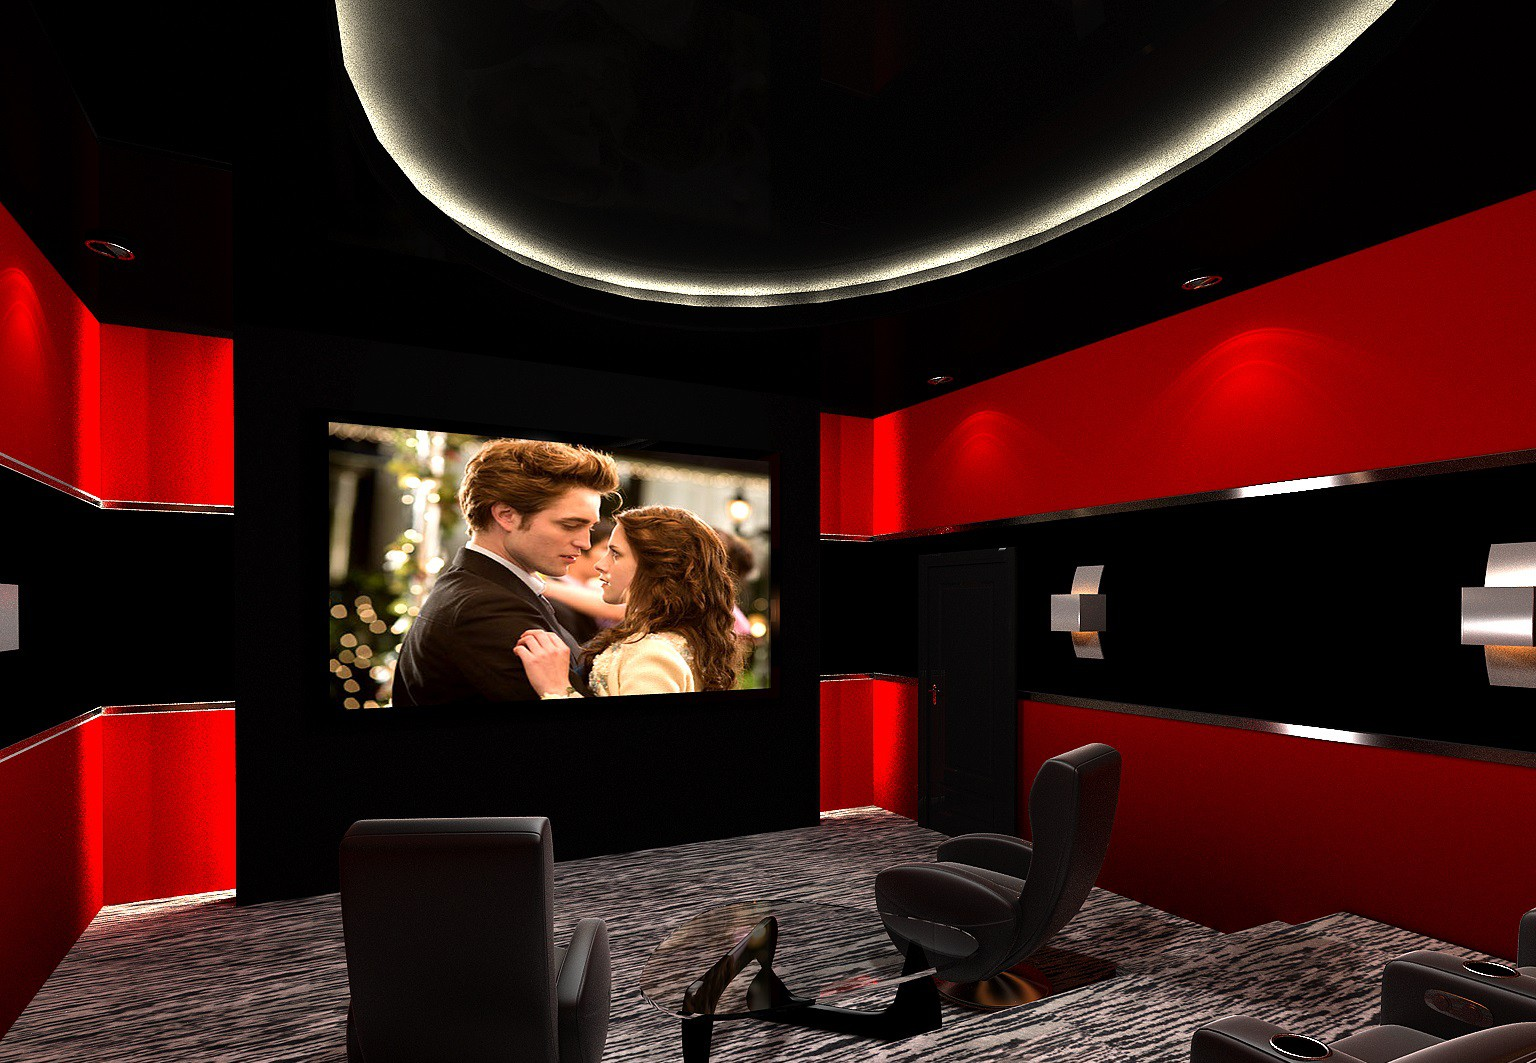 Wondrous Home Theaters Unique Home Systems Largest Home Design Picture Inspirations Pitcheantrous